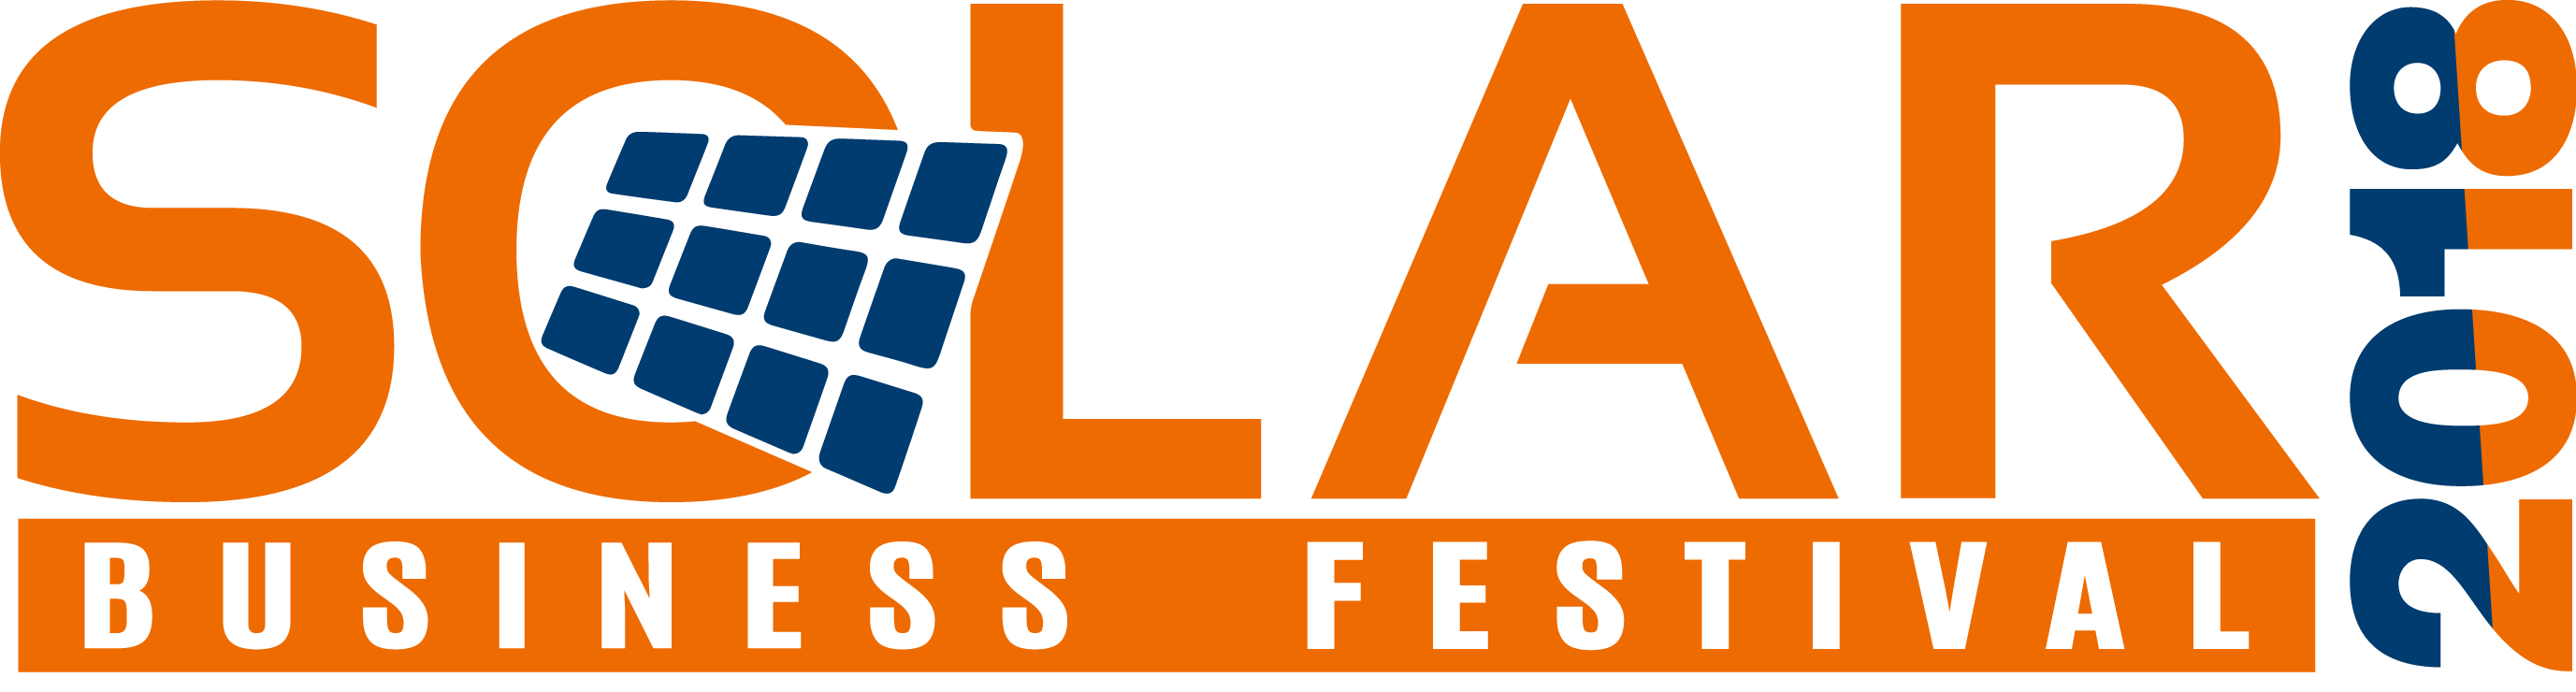 Solar Business Festival 2018 logo